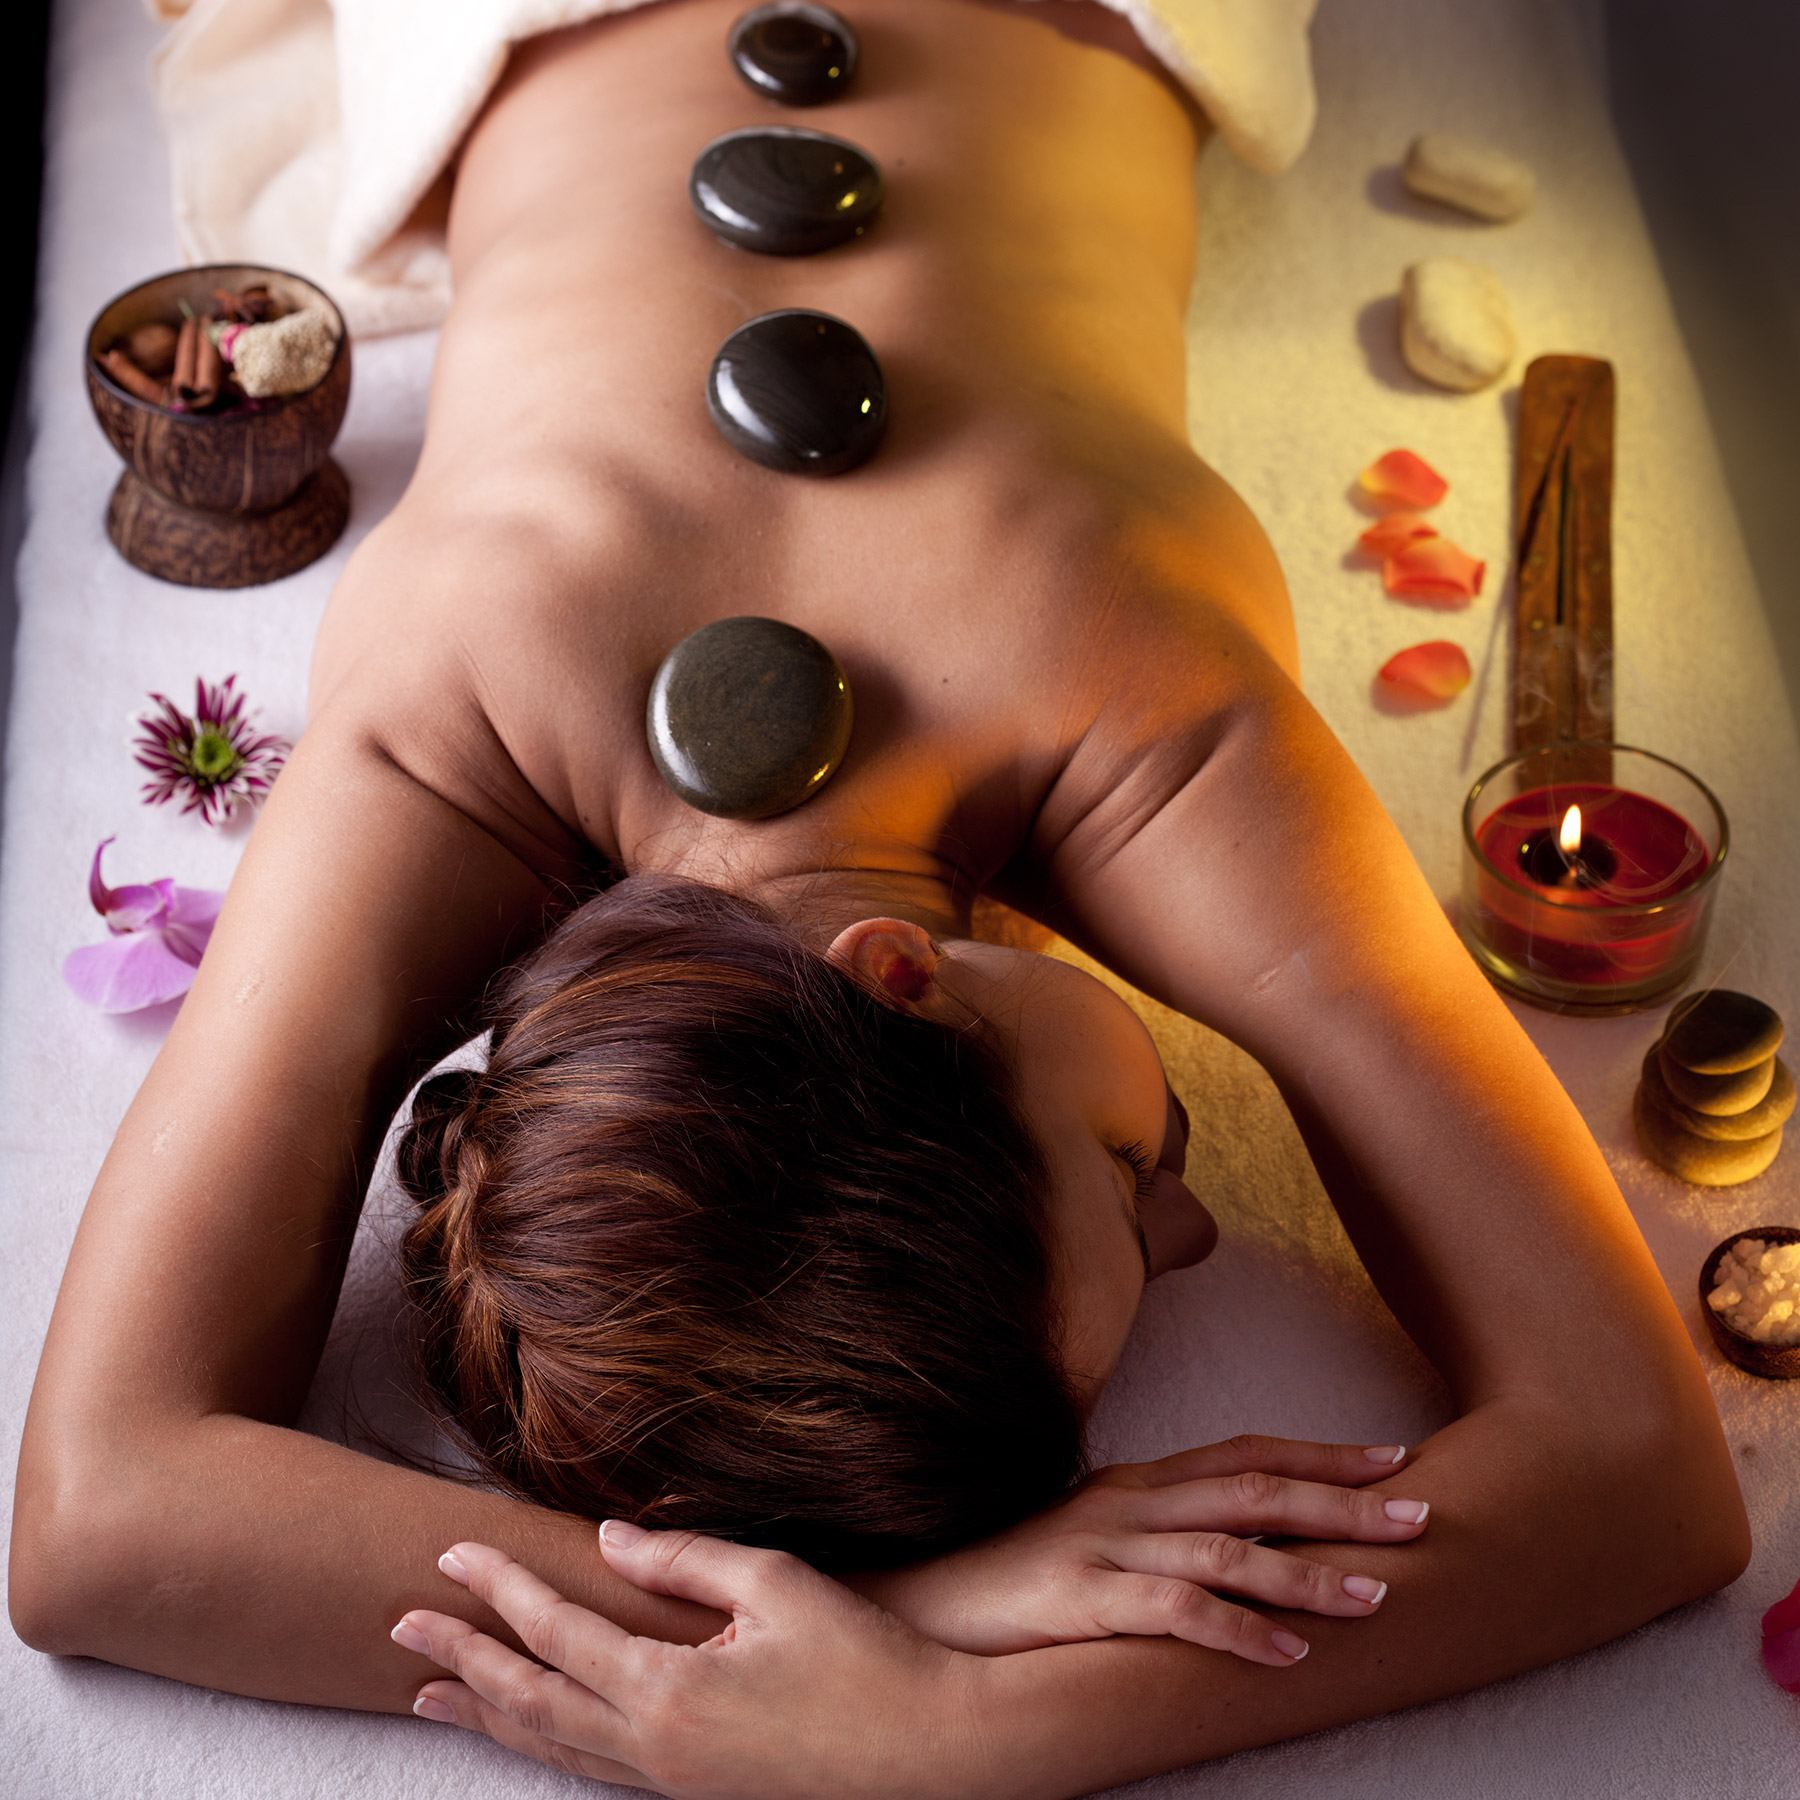 gallery-spa-2